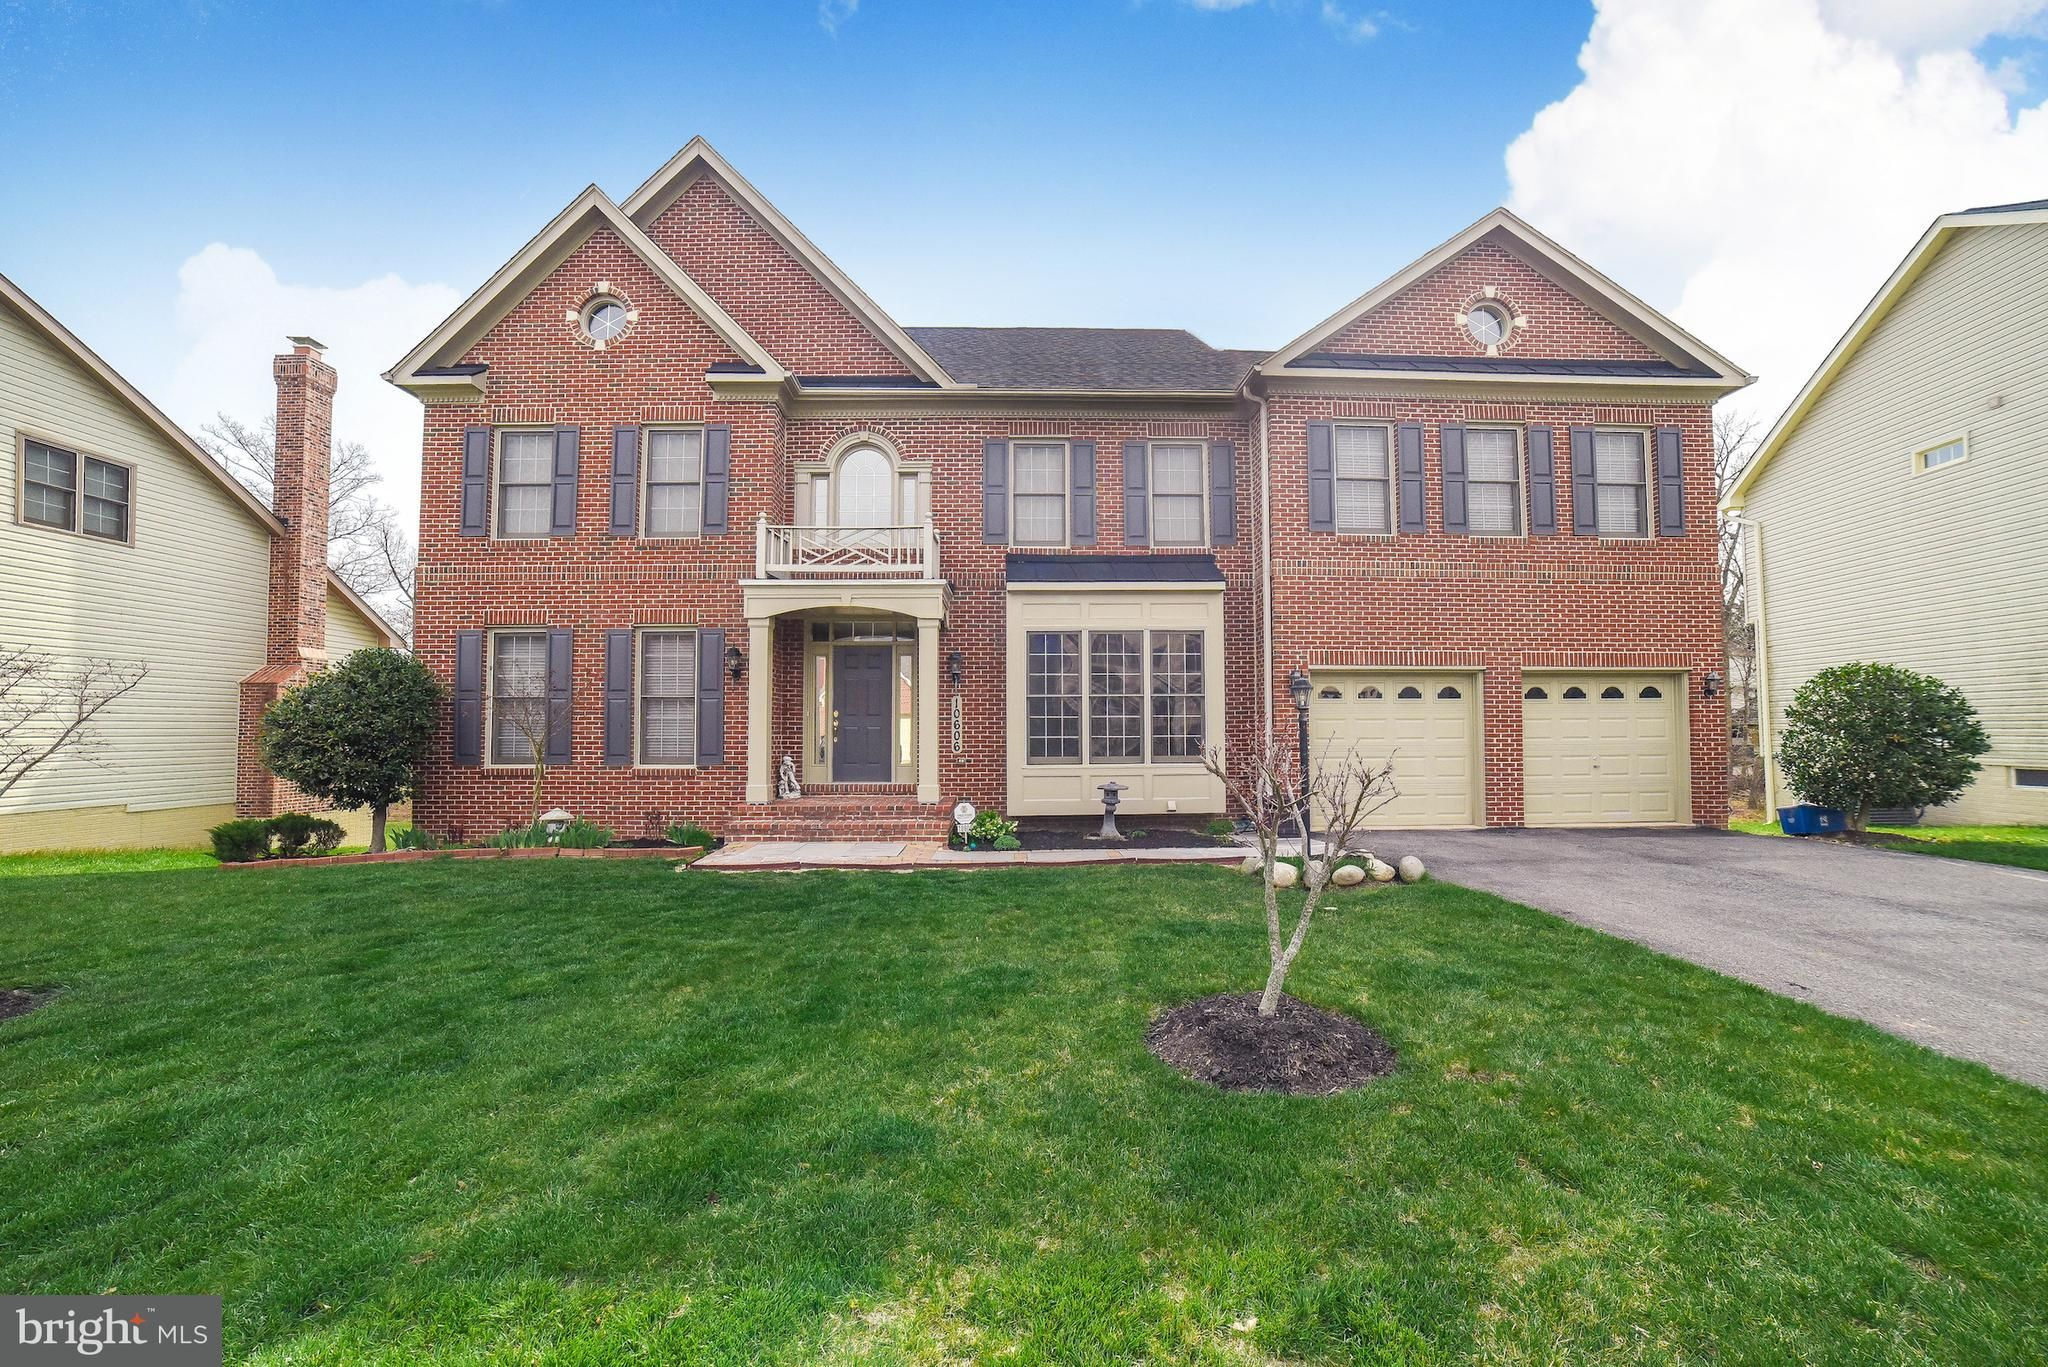 Waldorf Real Estate Waldorf Maryland Homes For Sale Www Reshawnaleaven Com Real Estate First Time Home Buyers Estates